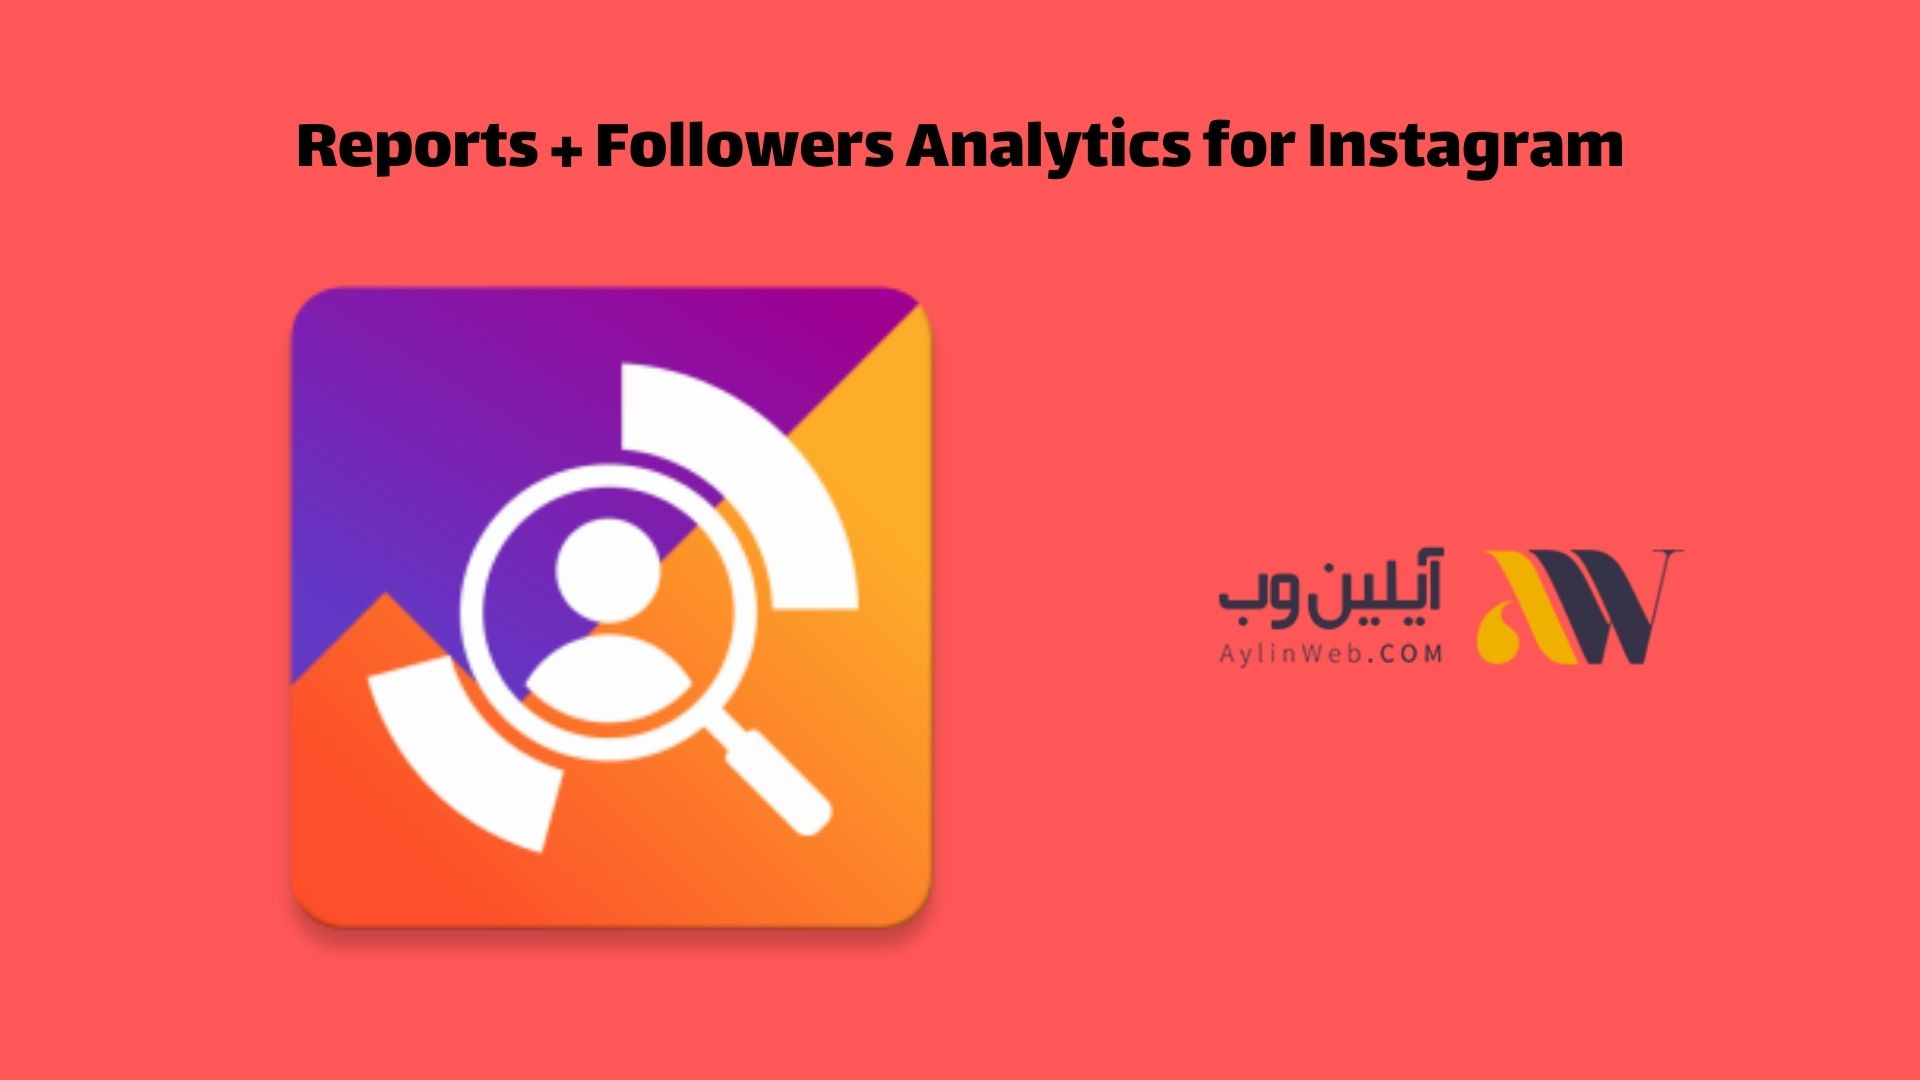 Reports + Followers Analytics for Instagram